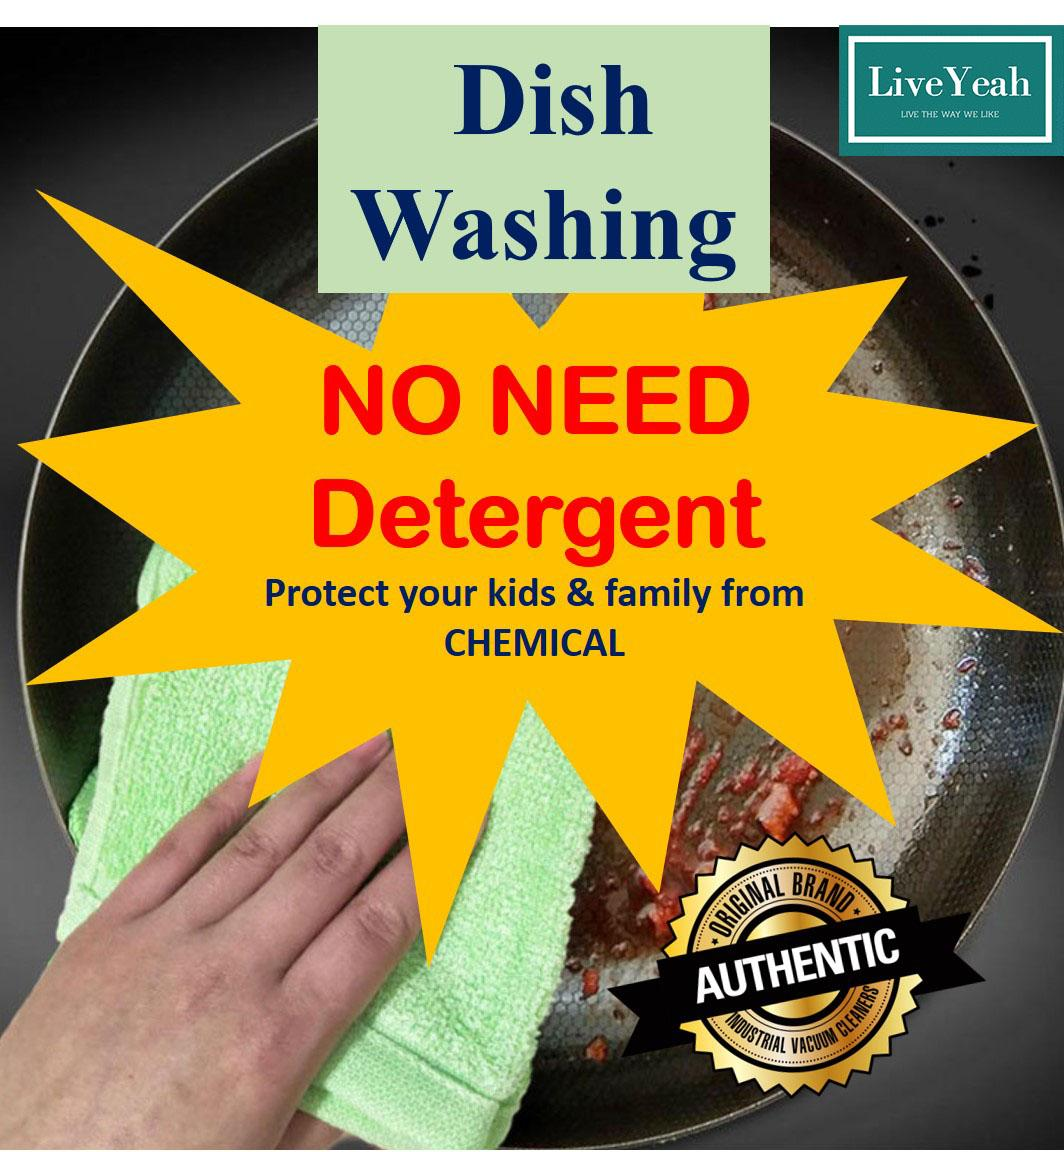 (dish Washing, No Need Detergent)**3 Pcs**kitchen Dishcloths/fabric Oil Free Wash Dishes/washing Cloths/hand Towel/ Table Cloths/facial Wash / Baby Wash / Towel Wash Cloths / Cleaning Wipe 26 X 26cm By Liveyeah.